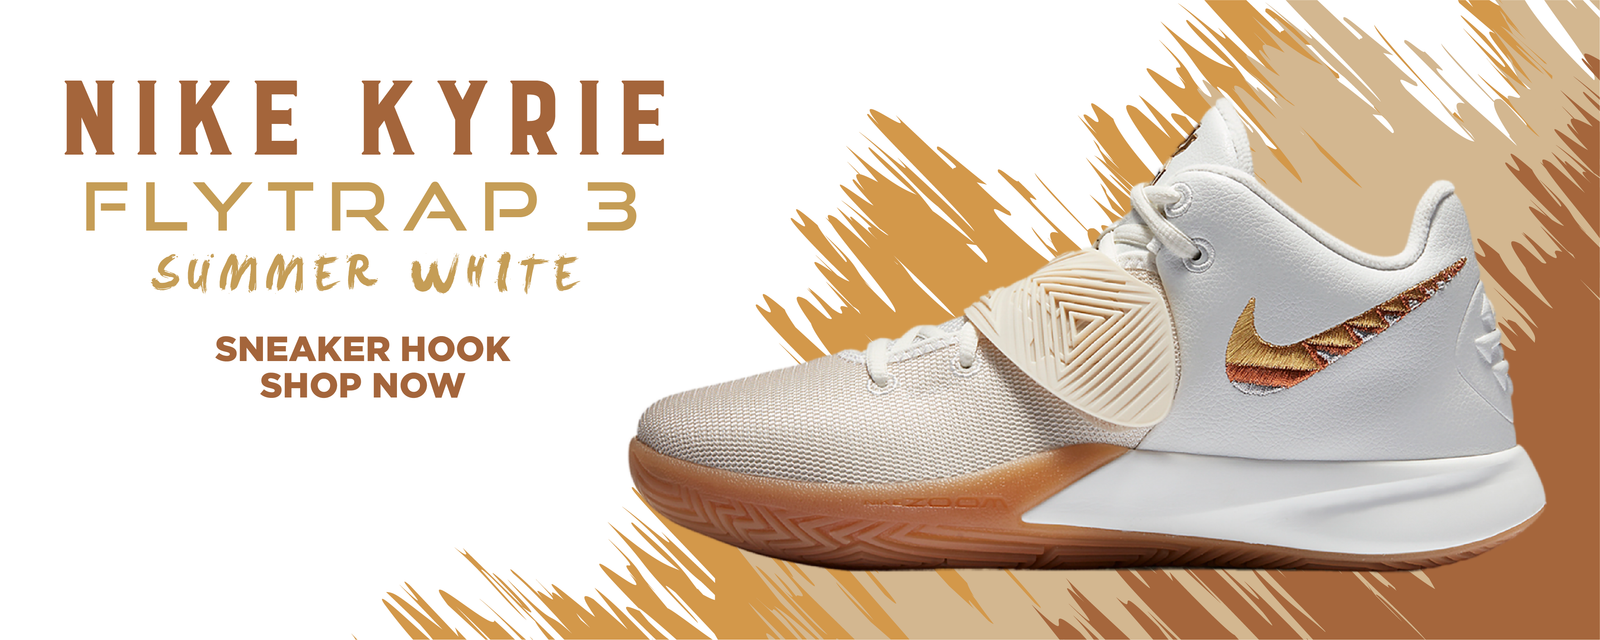 Kyrie Flytrap 3 Summit White Clothing to match Sneakers | Clothing to match Nike Kyrie Flytrap 3 Summit White Shoes